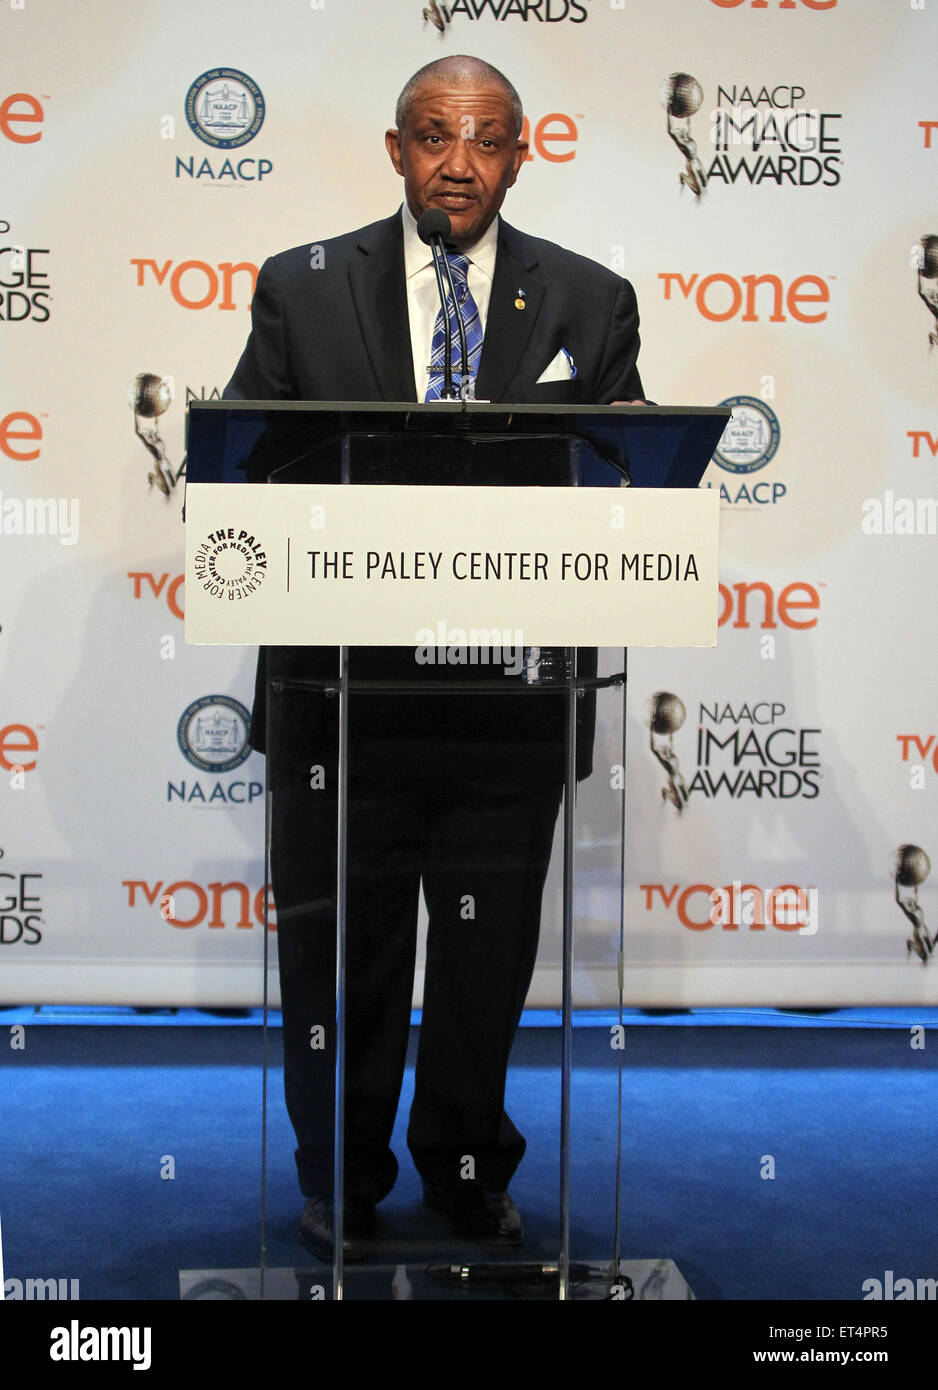 46th NAACP Image Awards - Nomination Announcement and Press Conference  Featuring: Guest Where: Beverly Hills, California, Stock Photo